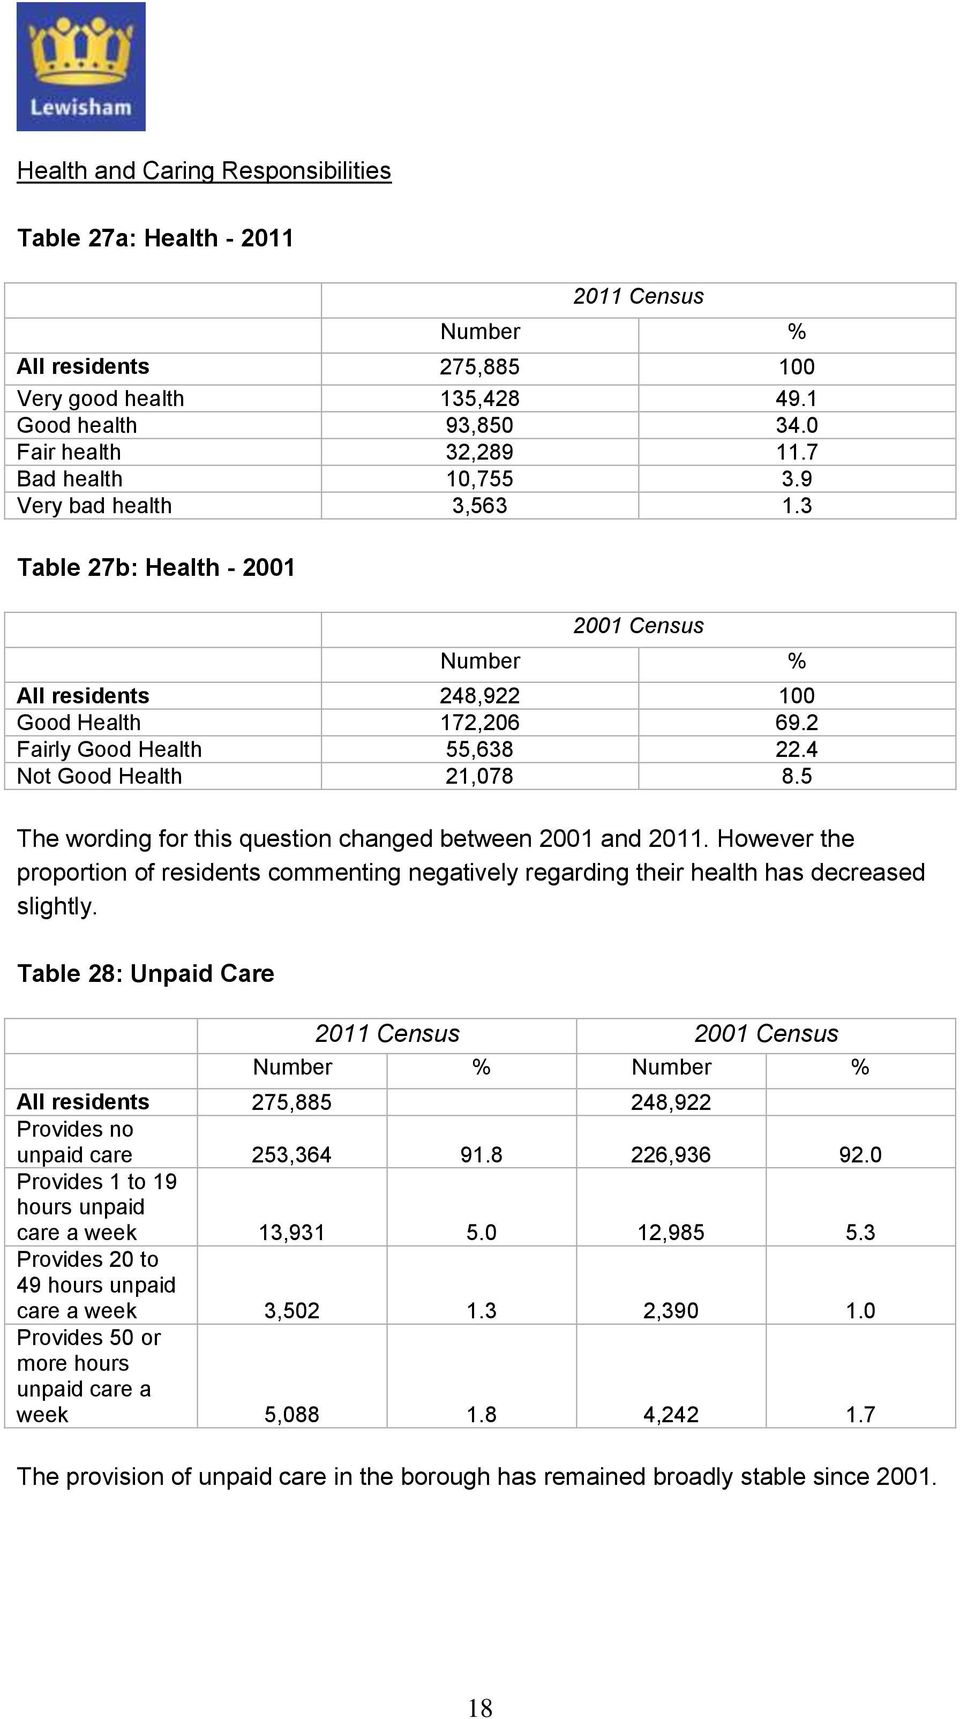 4 Not Good Health 21,078 8.5 The wording for this question changed between 2001 and 2011. However the proportion of residents commenting negatively regarding their health has decreased slightly.